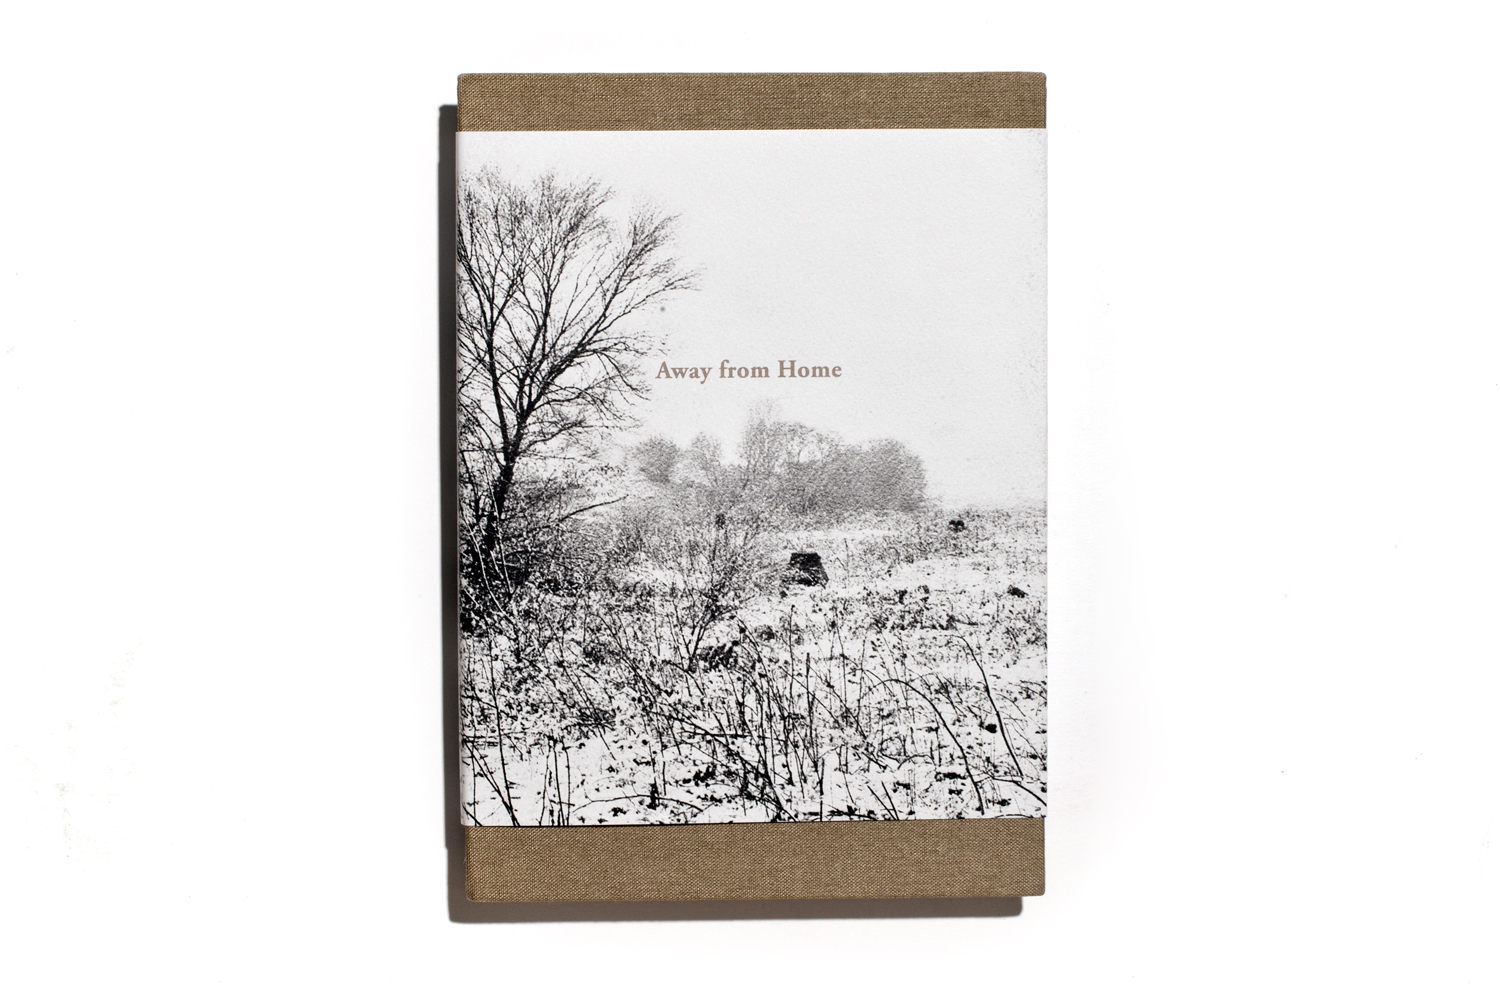 Away From Home by Kursat Bayhan, self-published, selected by Jason Eskenazi, photographer, author of By the Glow of the Jukebox: The Americans List.